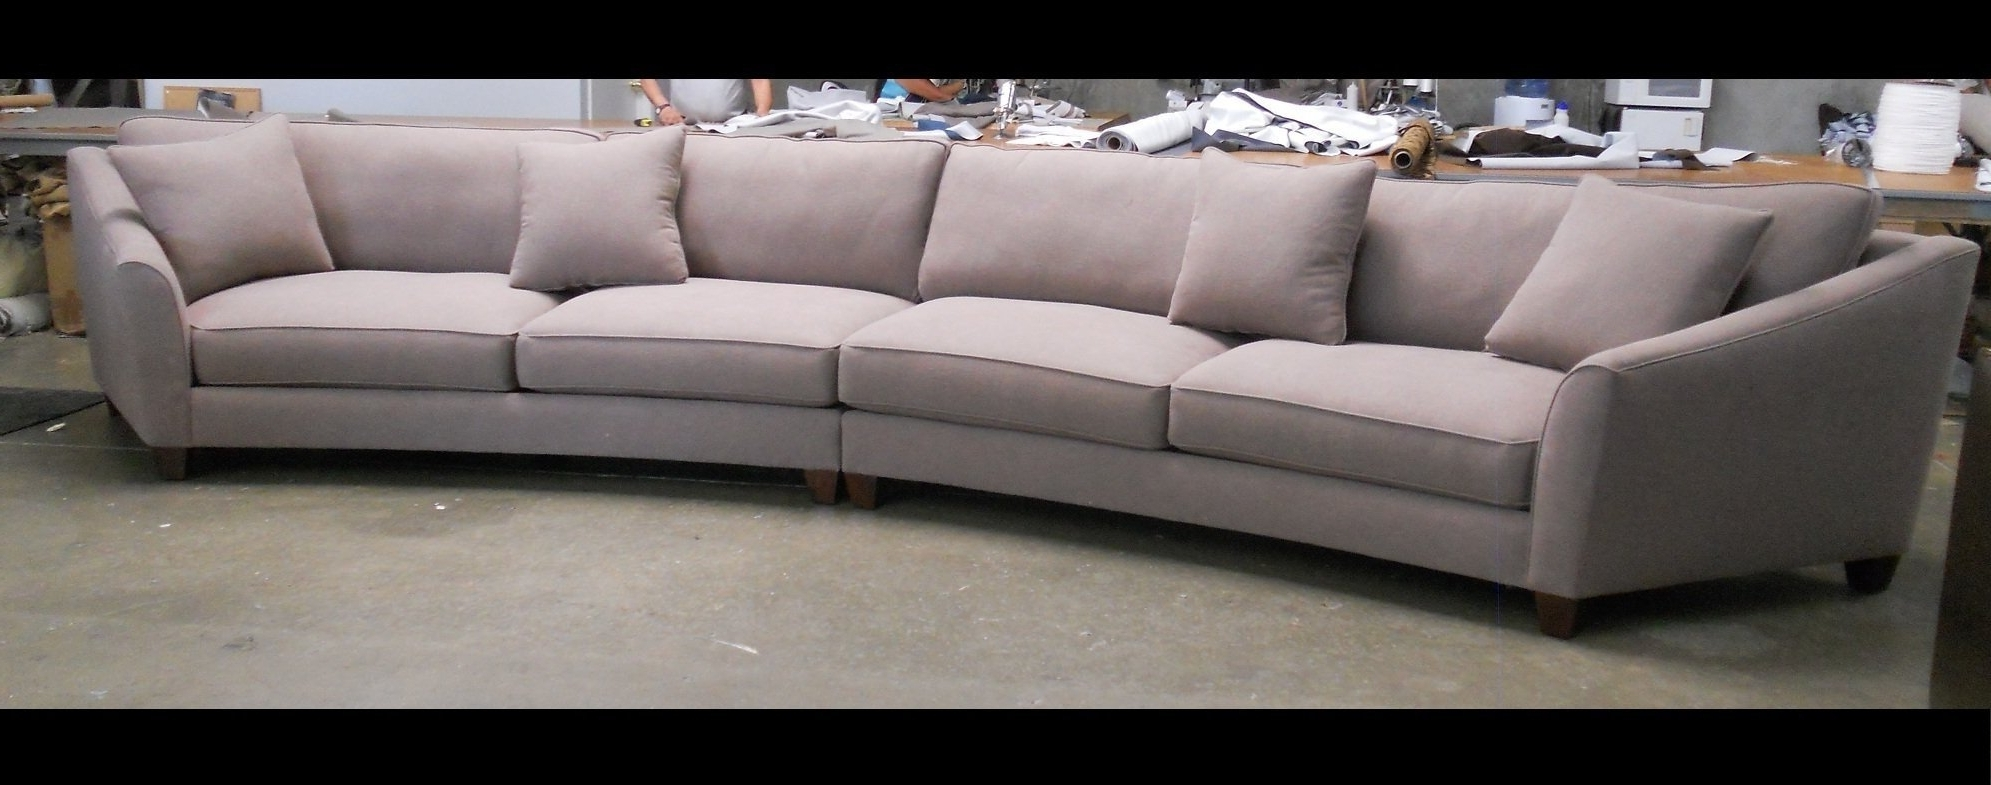 Joining Hardware Sectional Sofas Within Most Recently Released Furniture : 5060 Recliner Sectional Sofa Costco $699 Corner Couch (View 13 of 15)